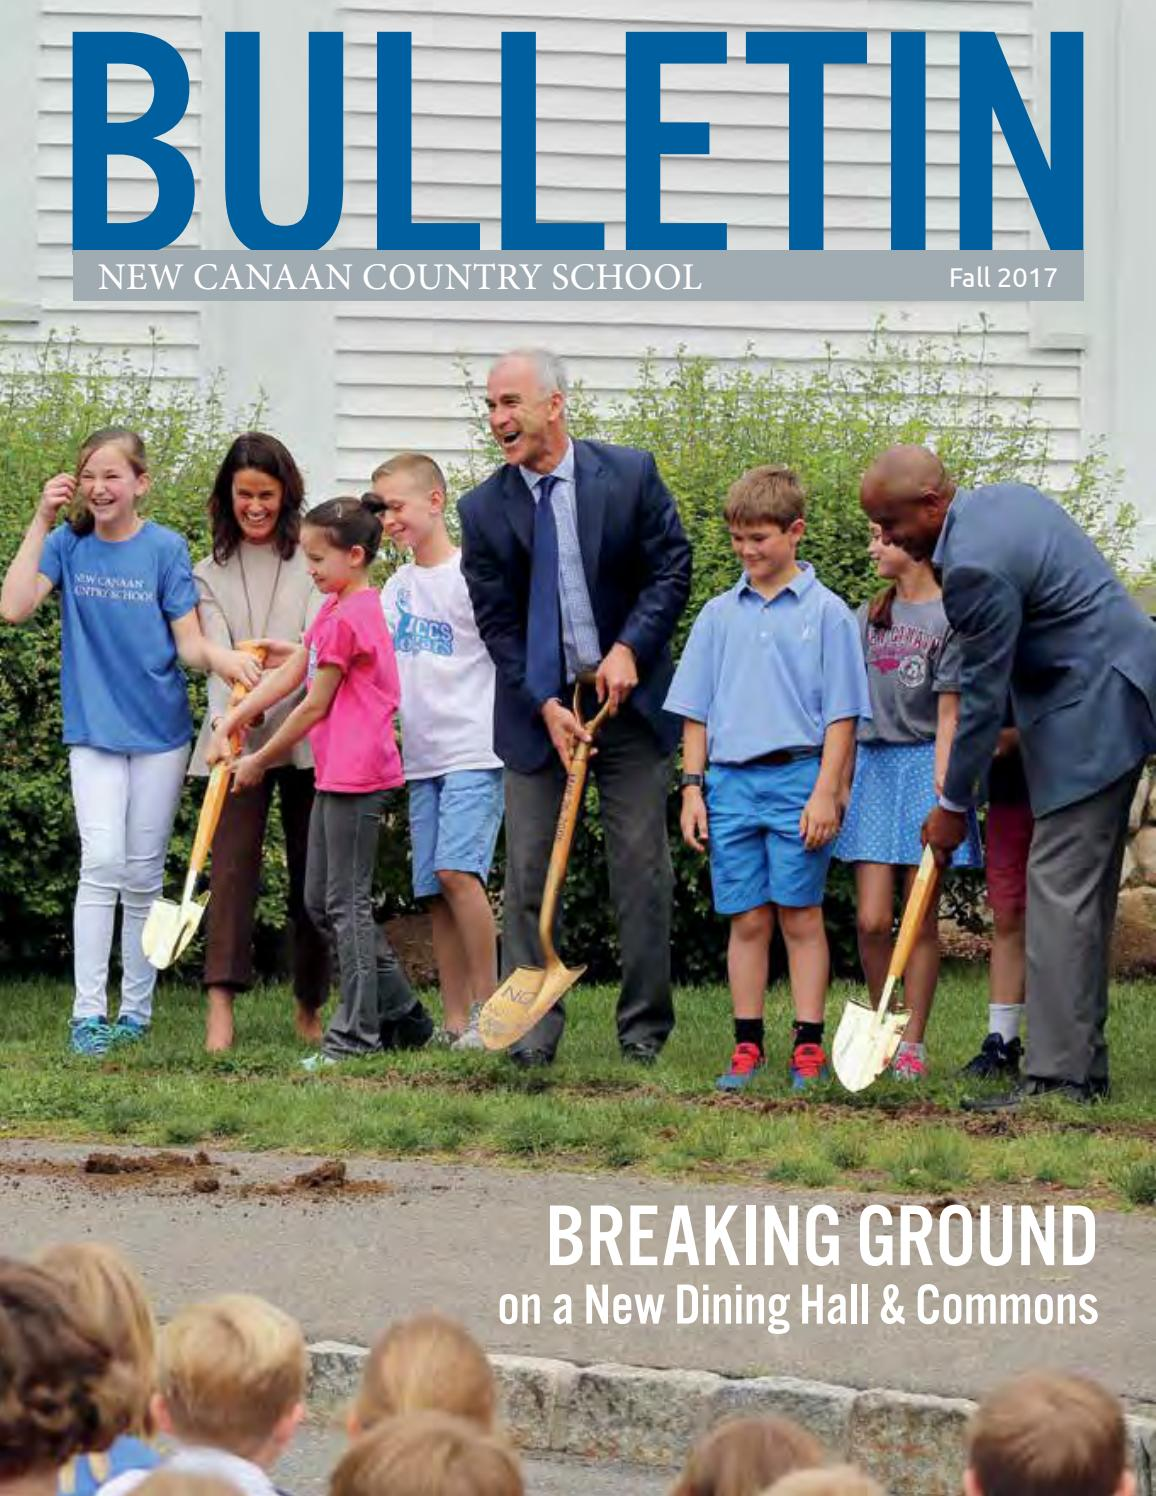 a945a9779ec2 NCCS Bulletin Fall 2017 by New Canaan Country School - issuu